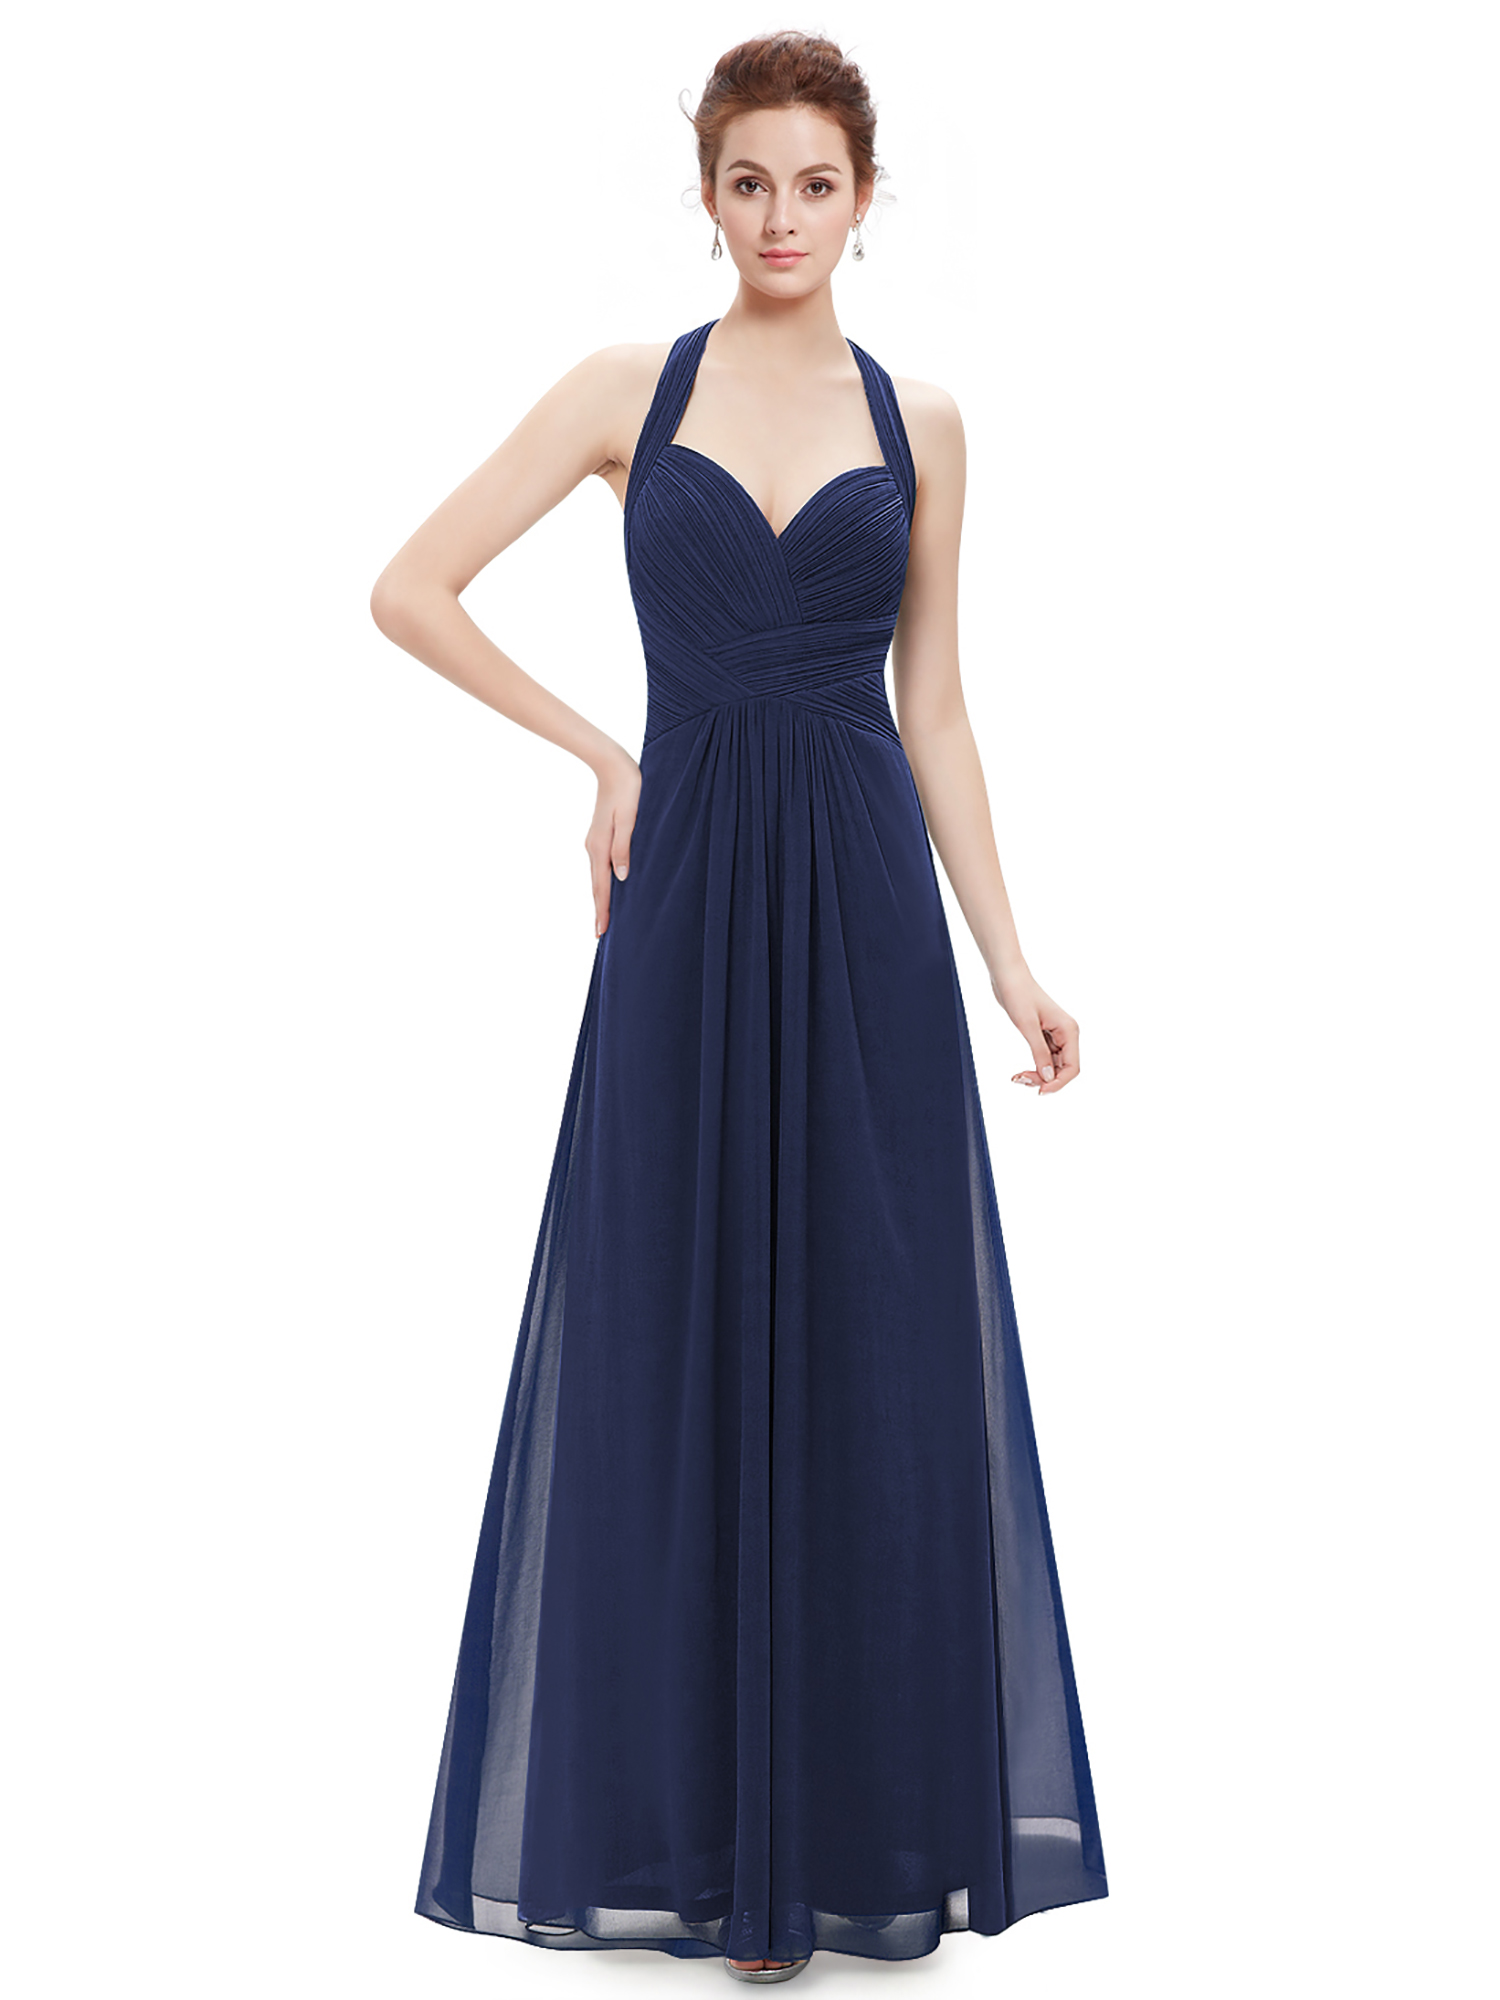 formal dresses for wedding women s maxi halter bridesmaid dress evening wedding prom 4317